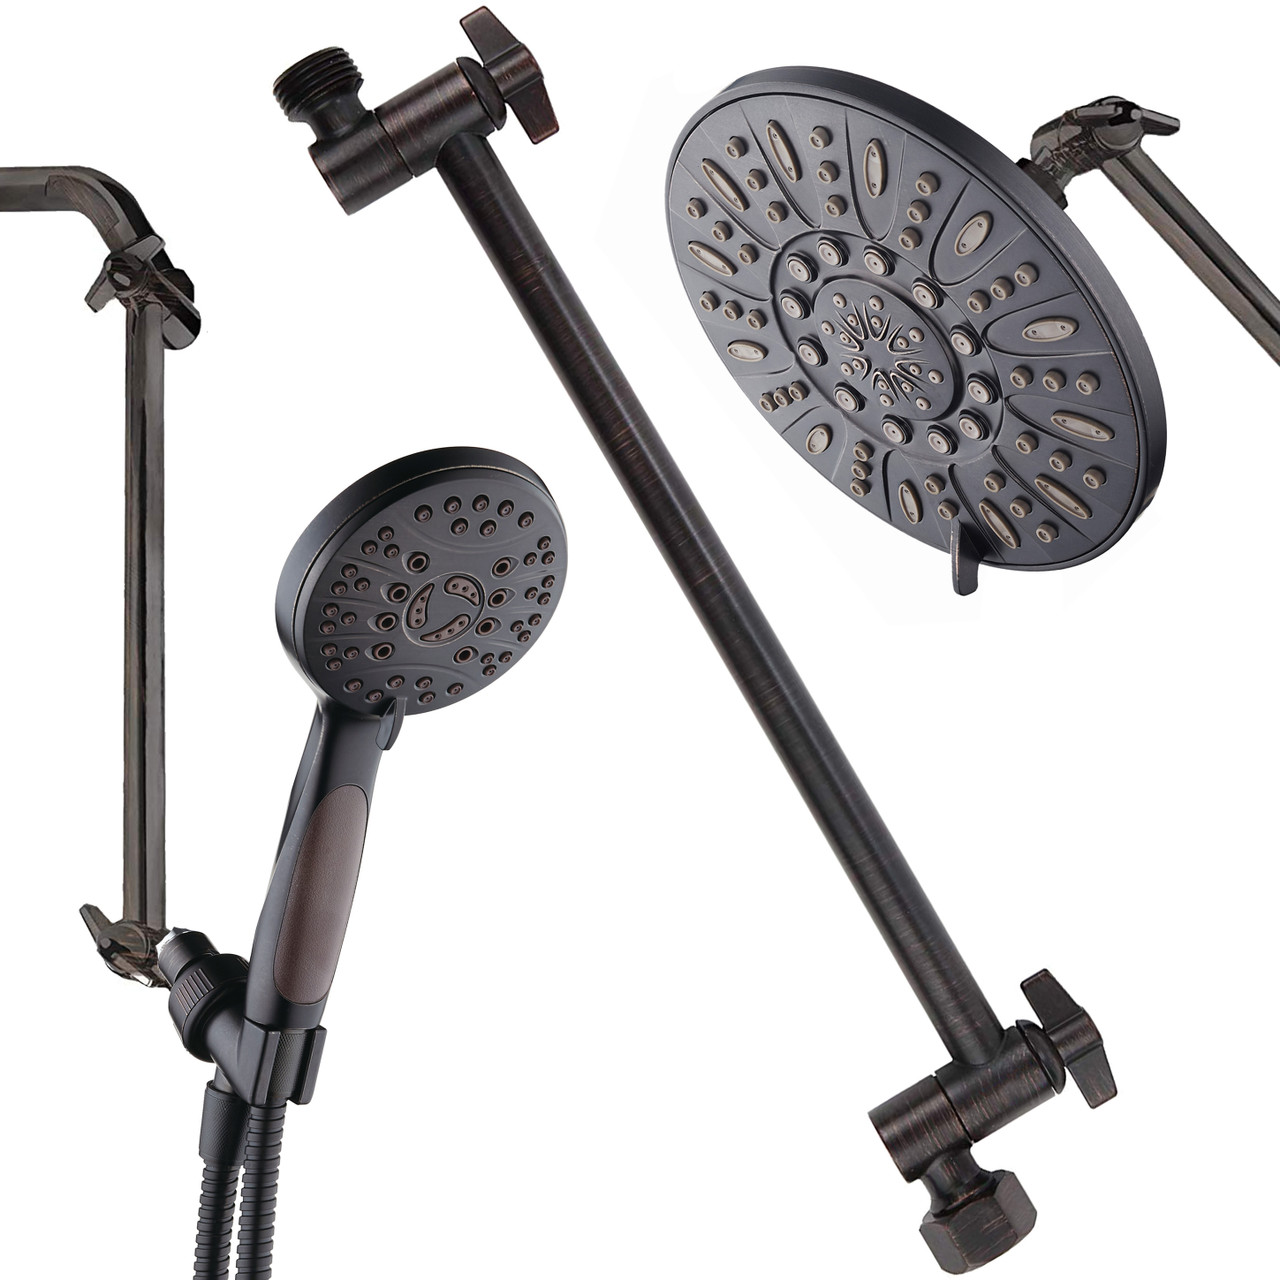 Hotel Spa 11 Solid Brass Adjustable Shower Extension Arm With Lock Joints Lower Or Raise Any Rain Or Handheld Showerhead To Your Height Angle 2 Foot Range Universal Connection Oil